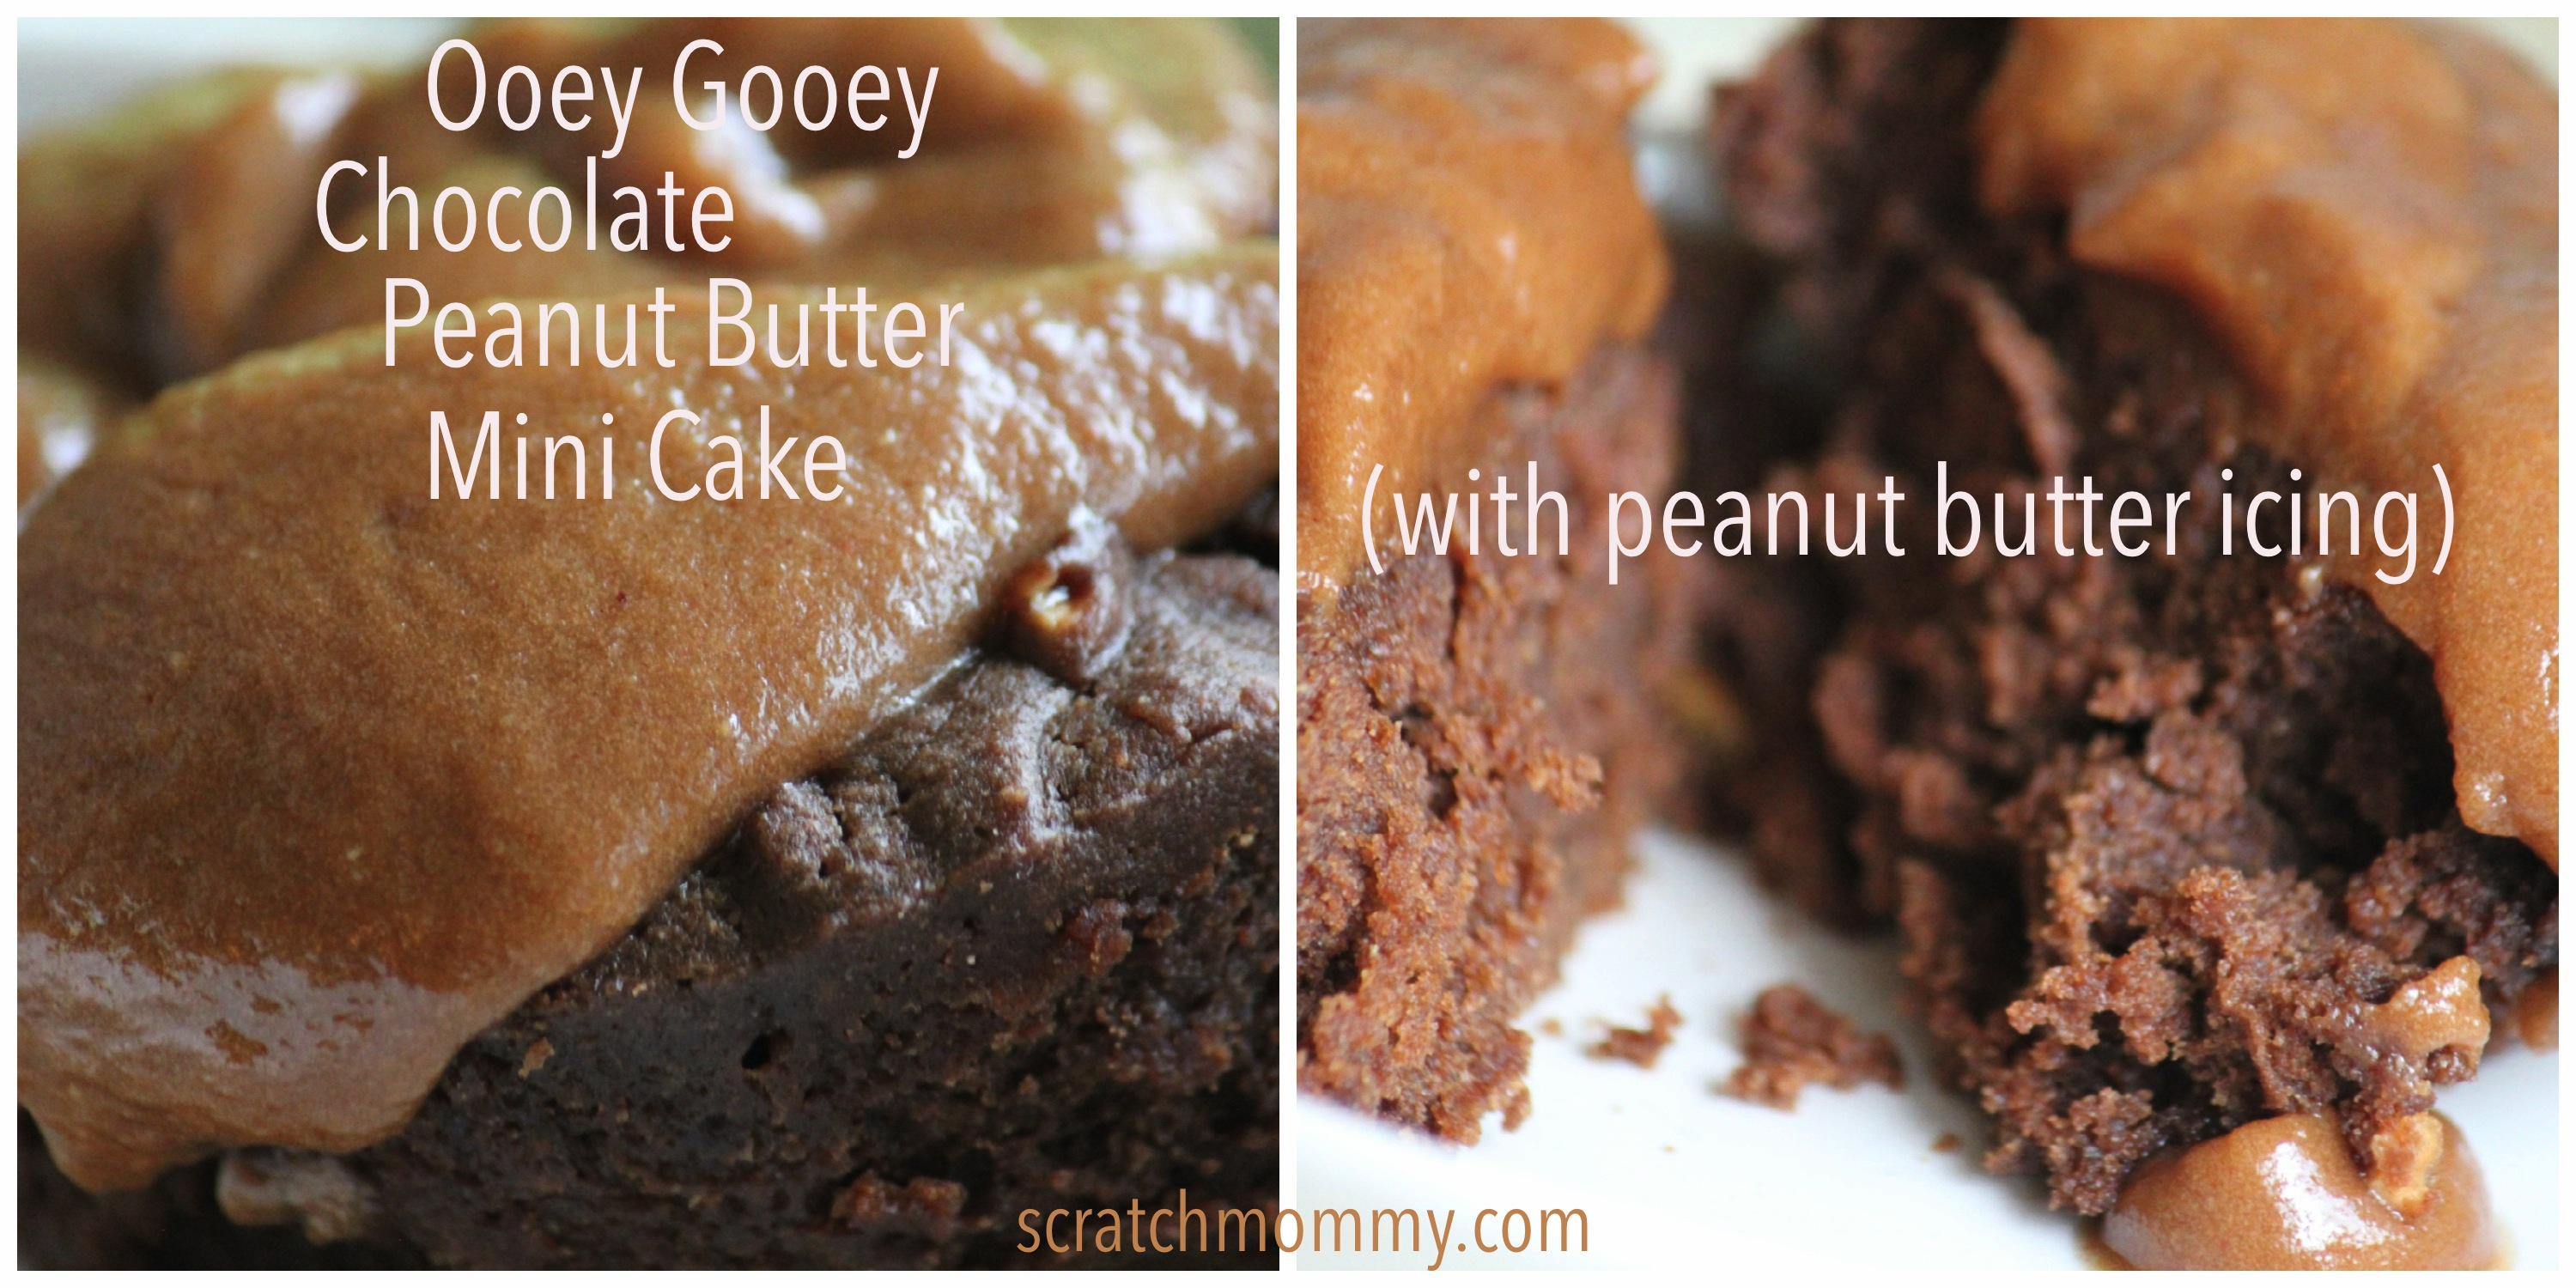 Ooey Gooey Chocolate Peanut Butter Mini Cake (with peanut butter icing ...